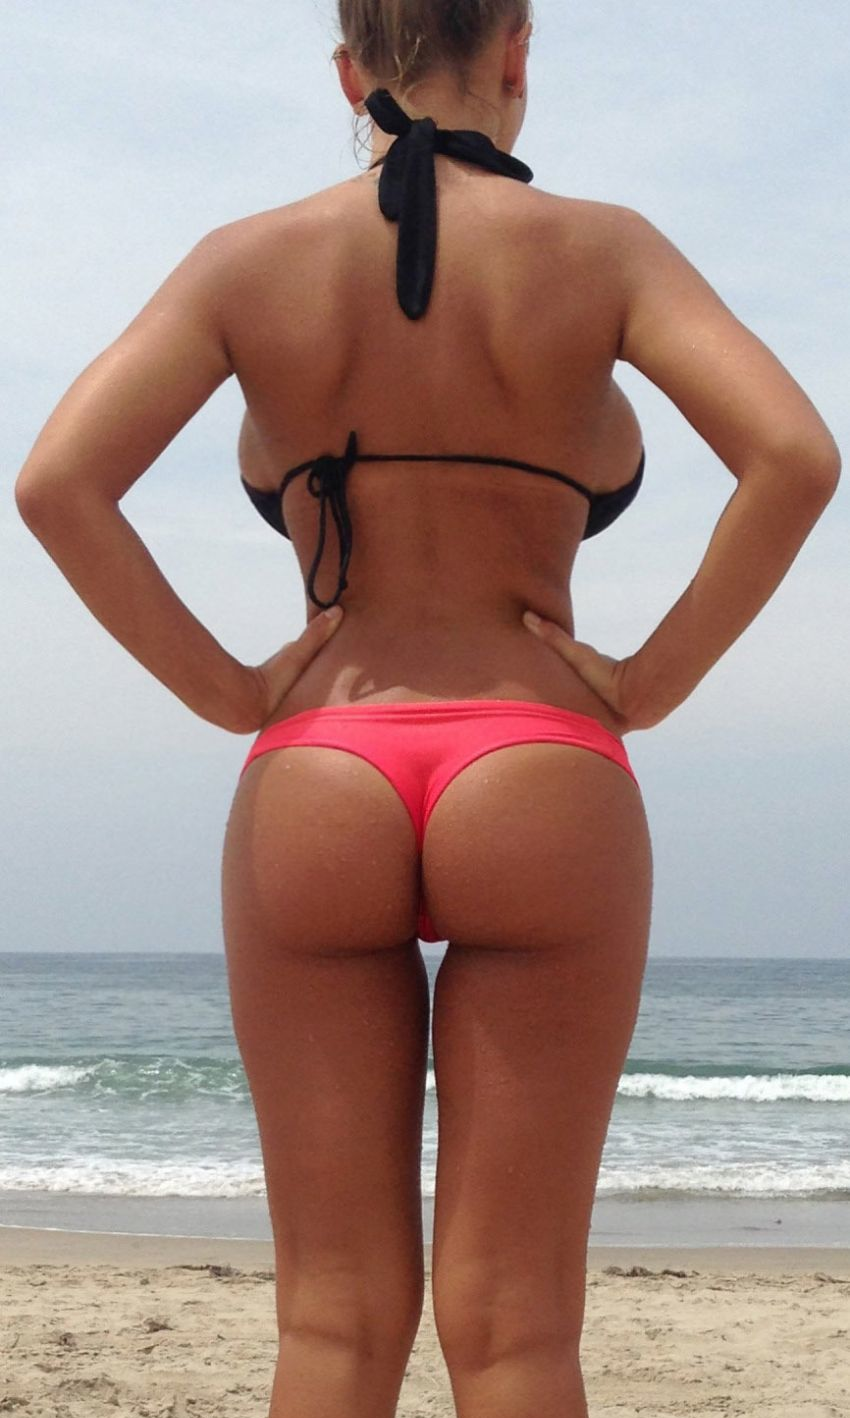 Sexy asses in thongs